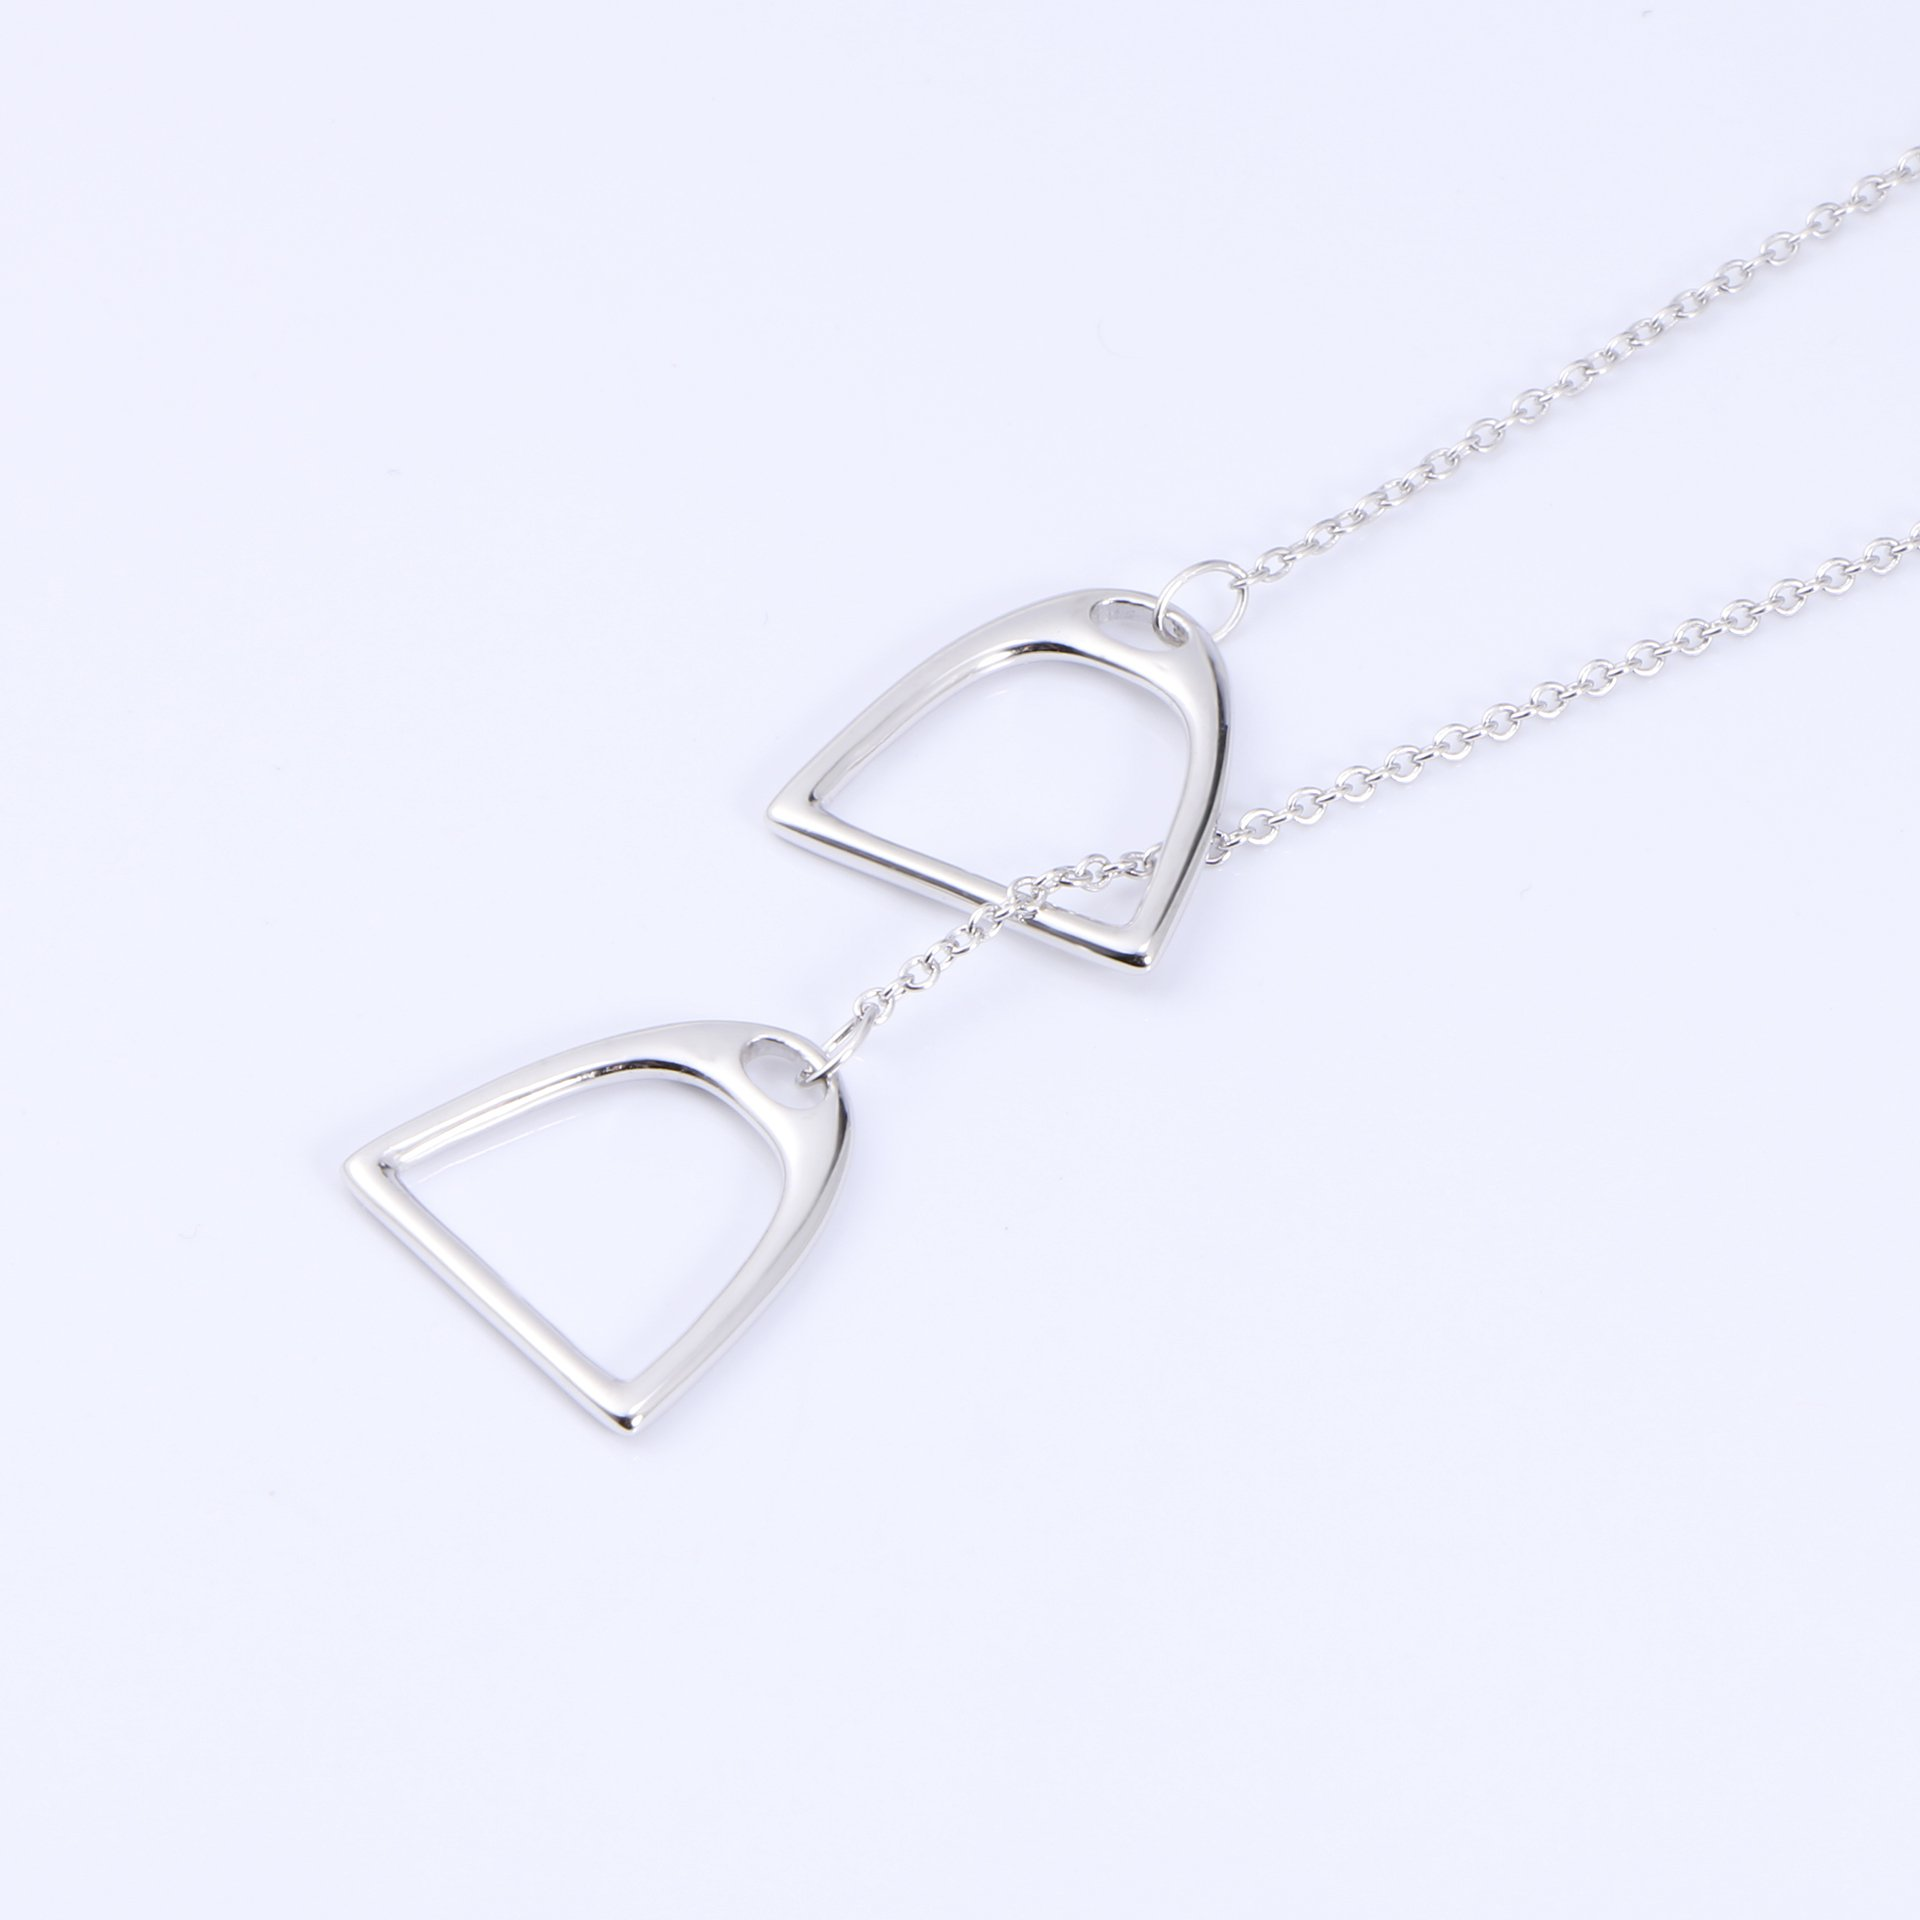 YFN Jewelry 925 Sterling Silver Simple Double Horse Stirrup Lariat Necklace Gift for Women Girls by YFN (Image #5)